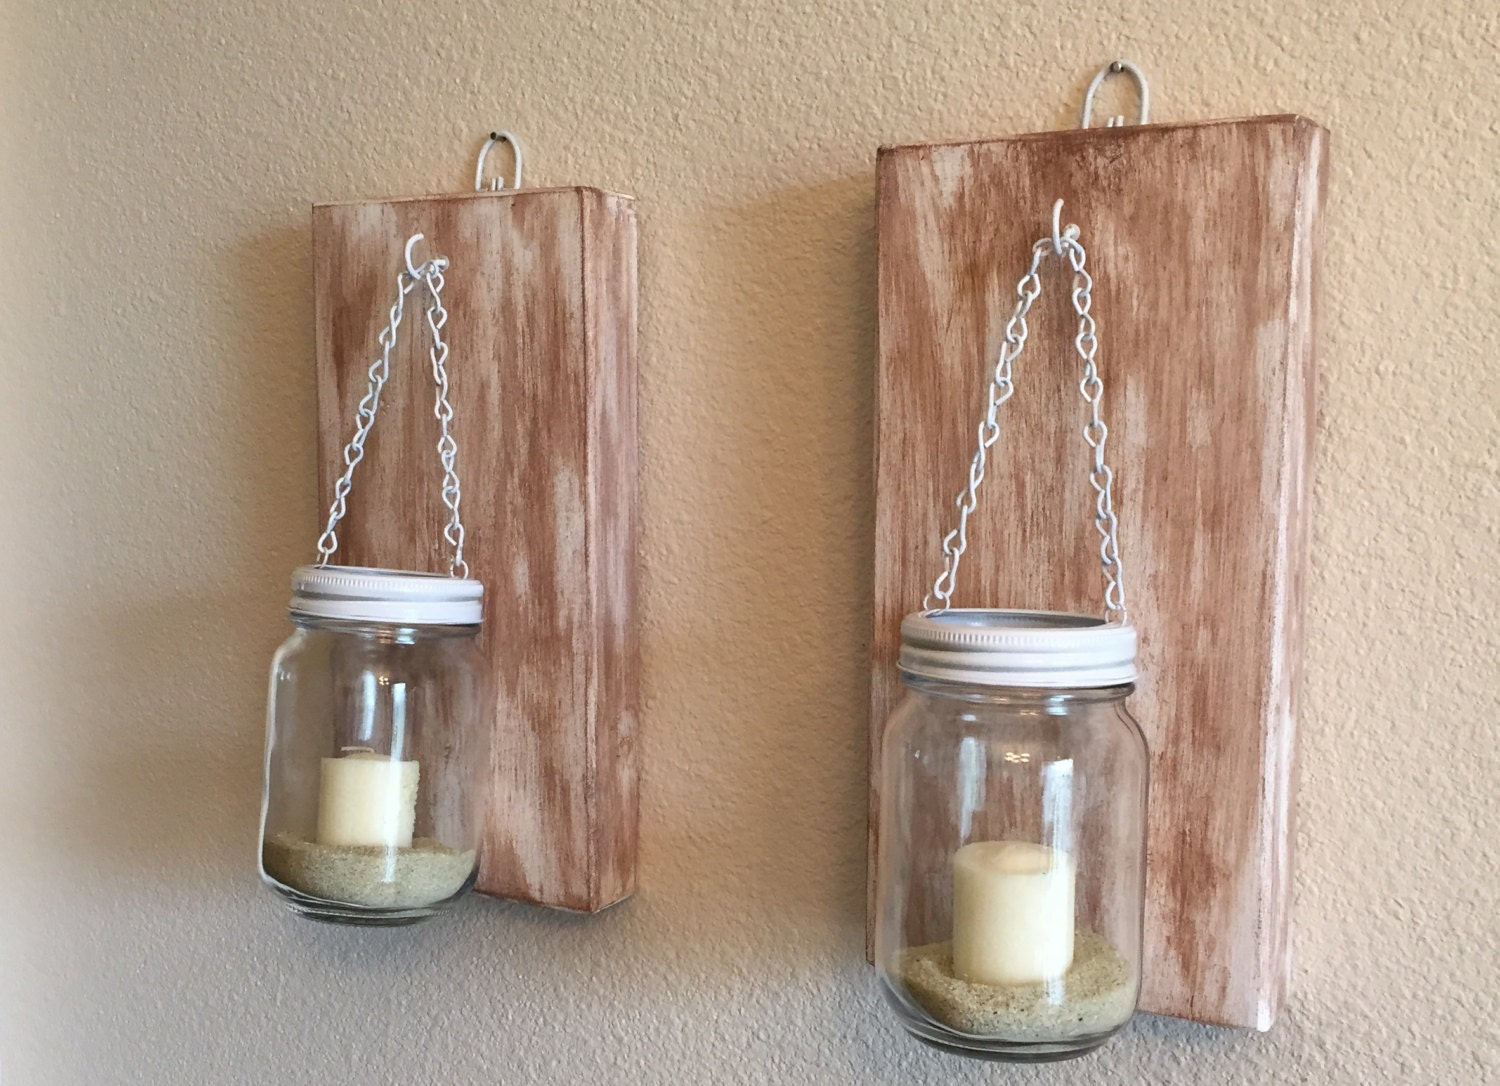 Candle Wall Sconces Rustic : Set of 2 Rustic Mason Jar Wall Sconce Candle Sconces by NARSCH